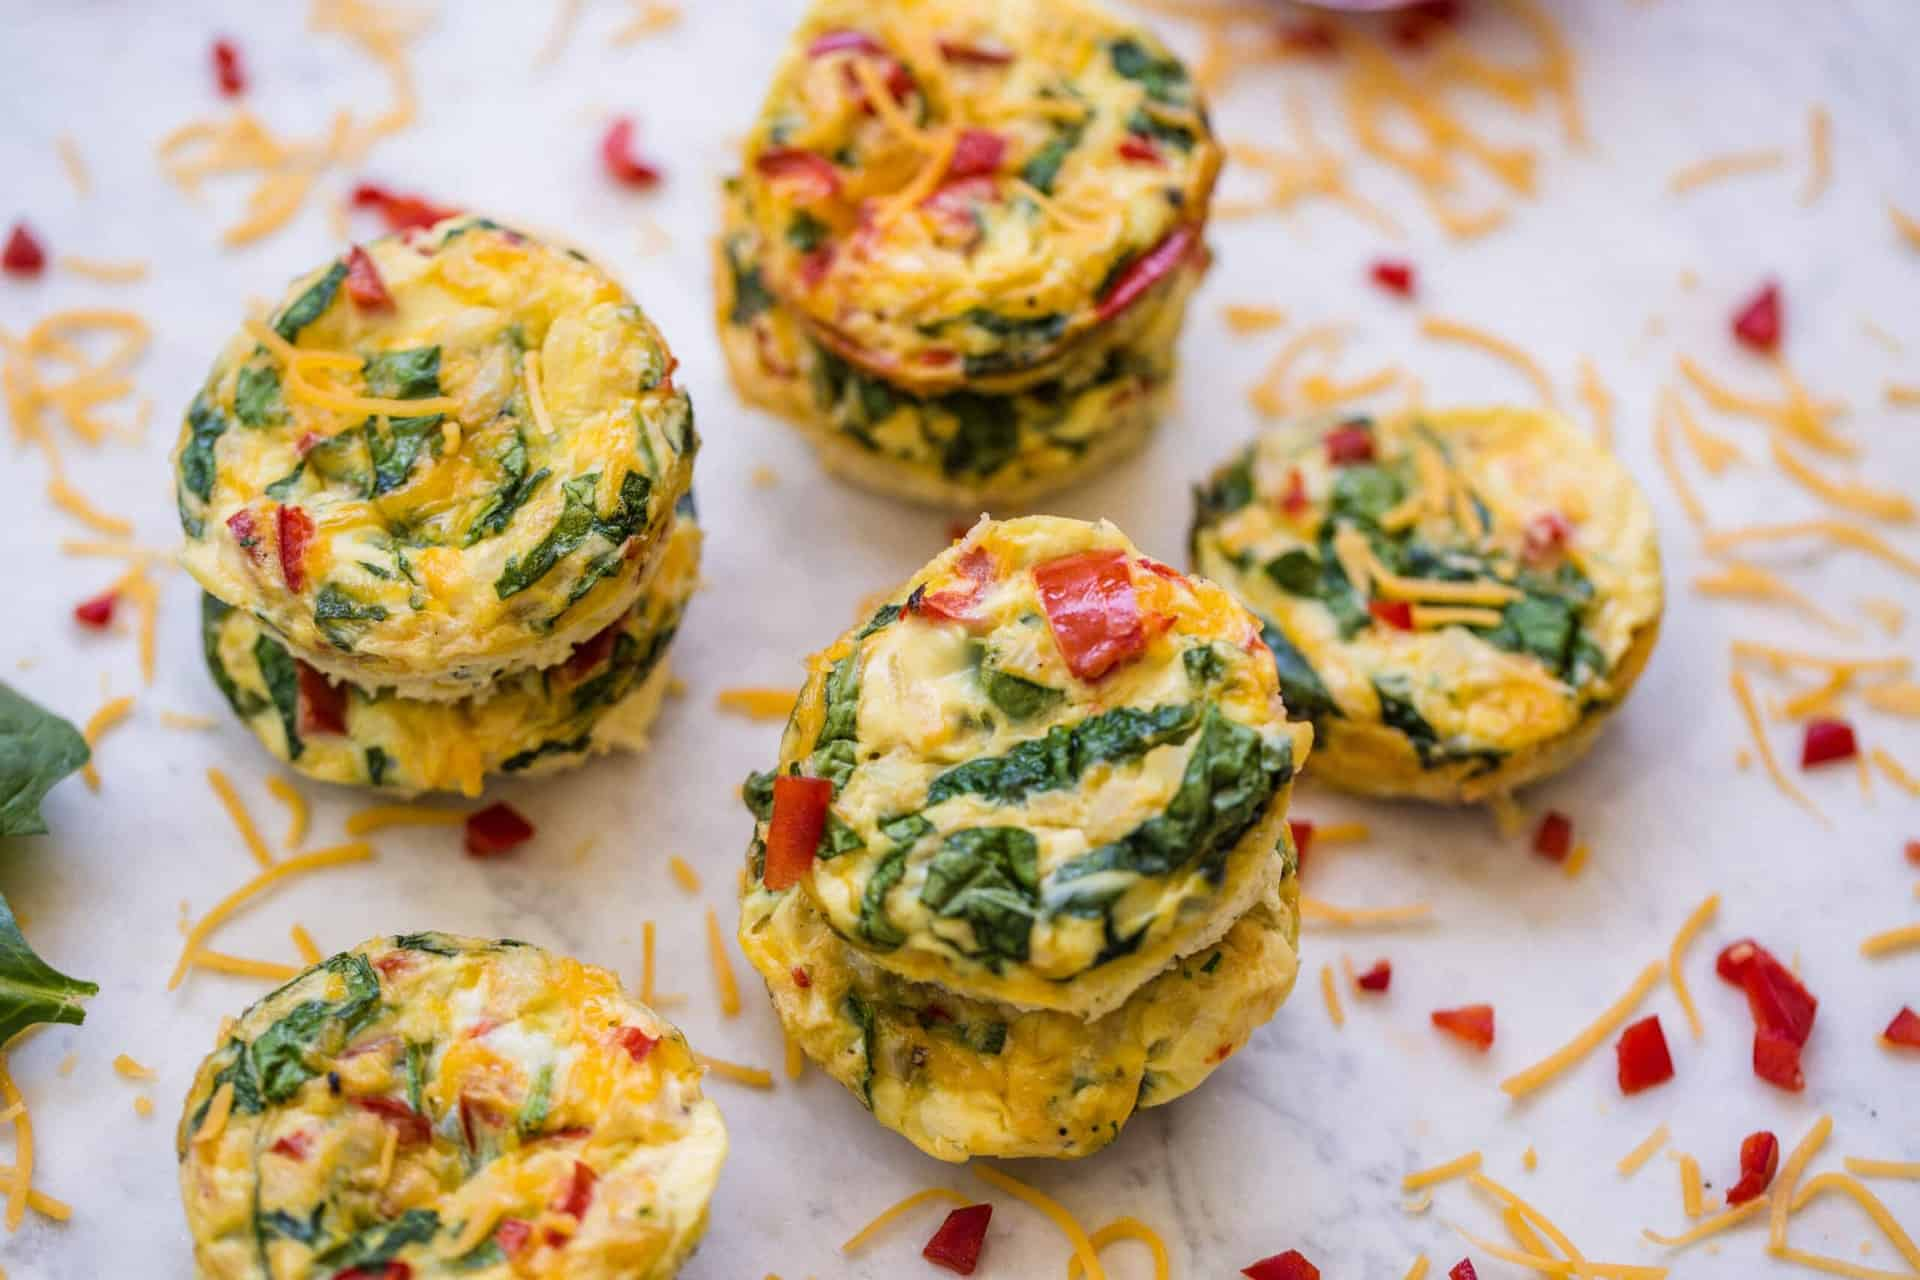 eggs, muffins